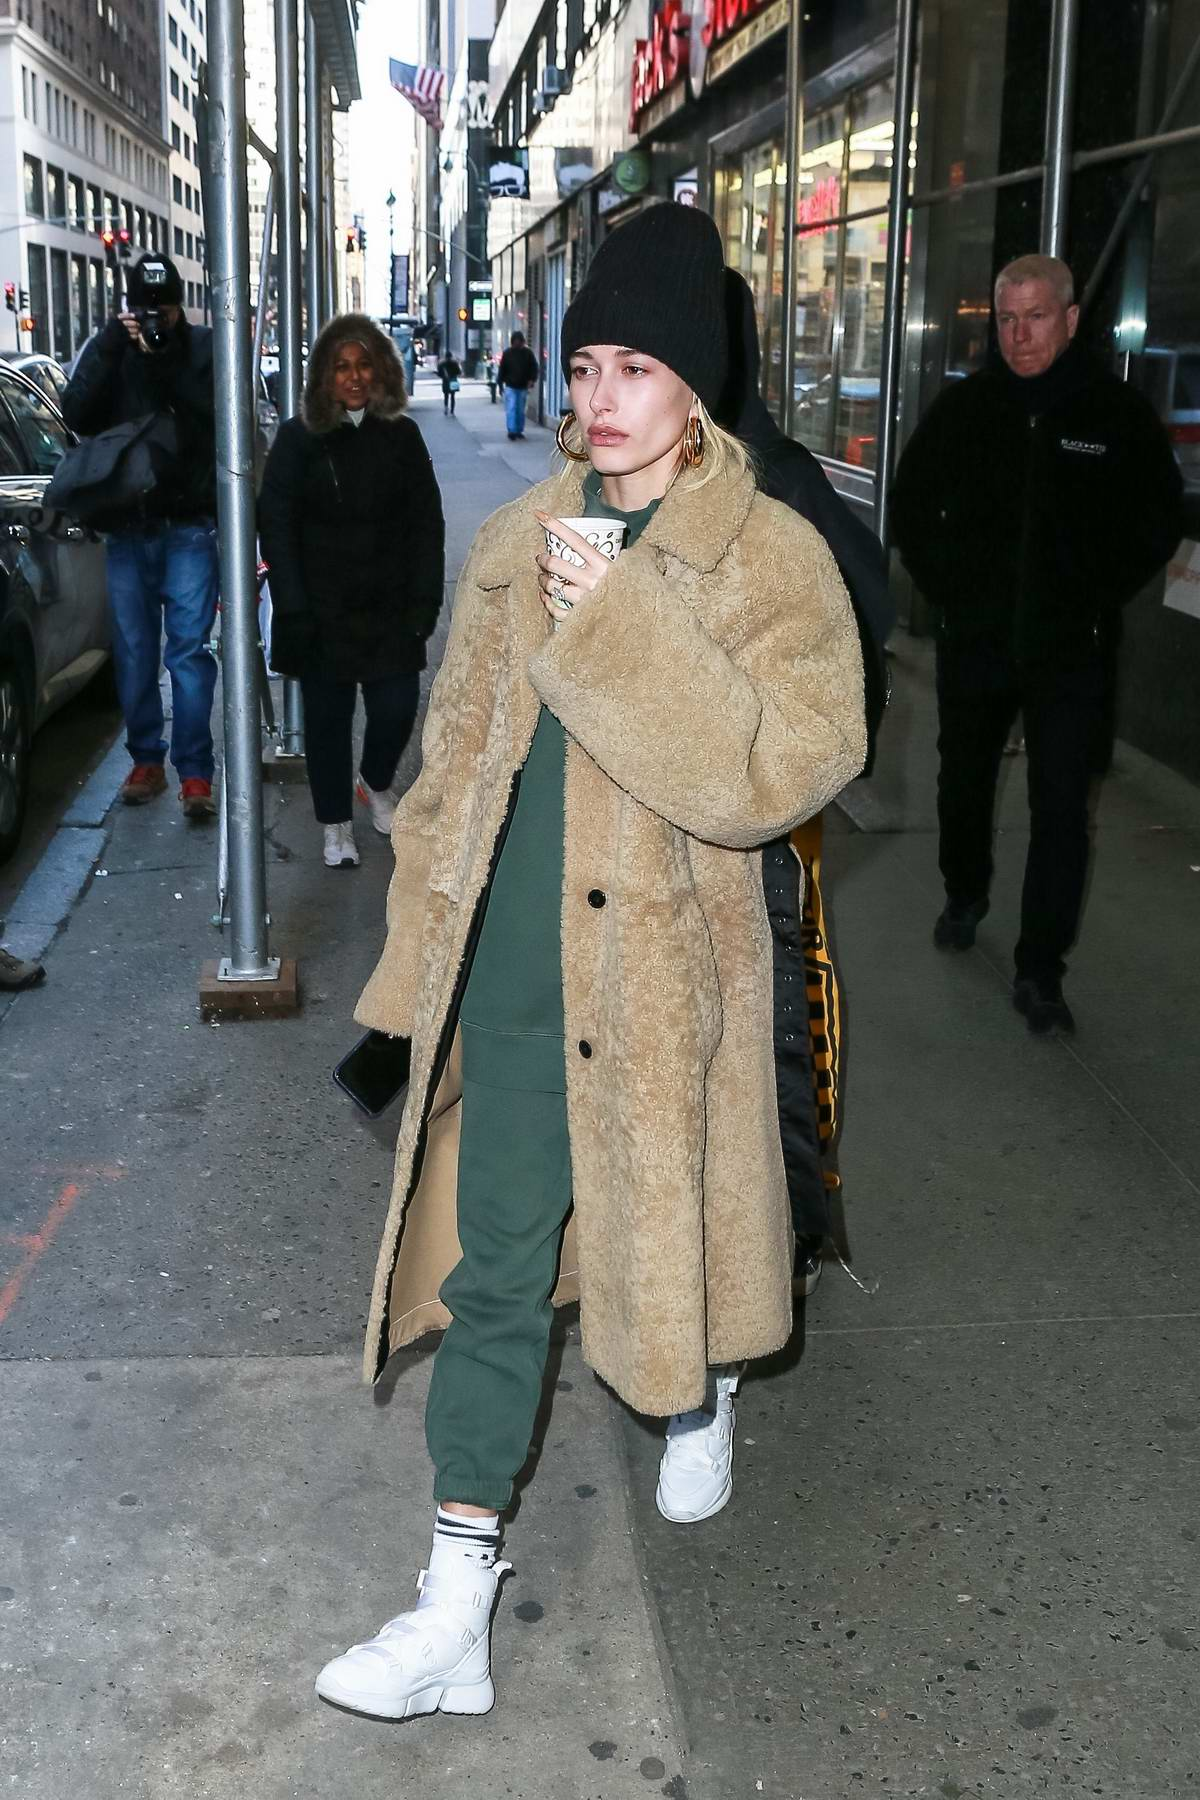 Hailey Baldwin and Justin Bieber seen leaving a building with his pastor in New York City